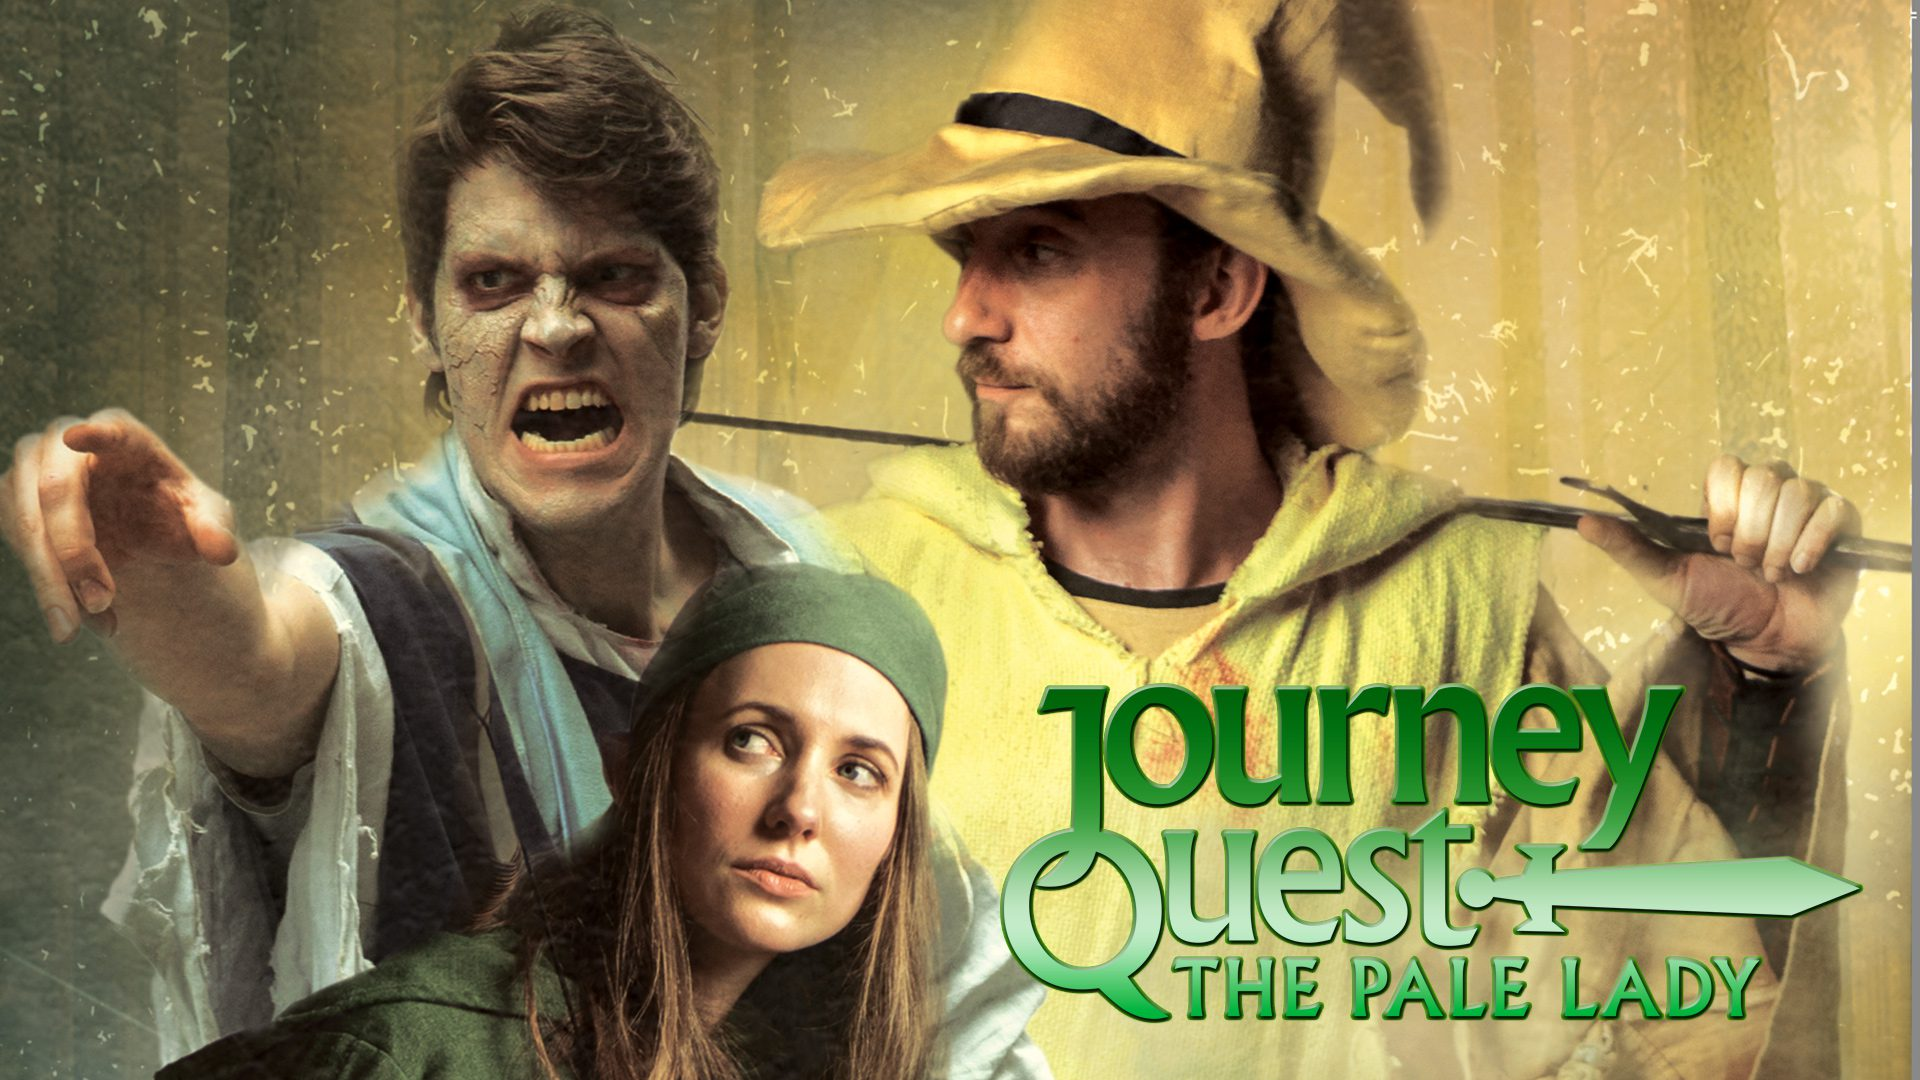 JourneyQuest 3 The Pale Lady